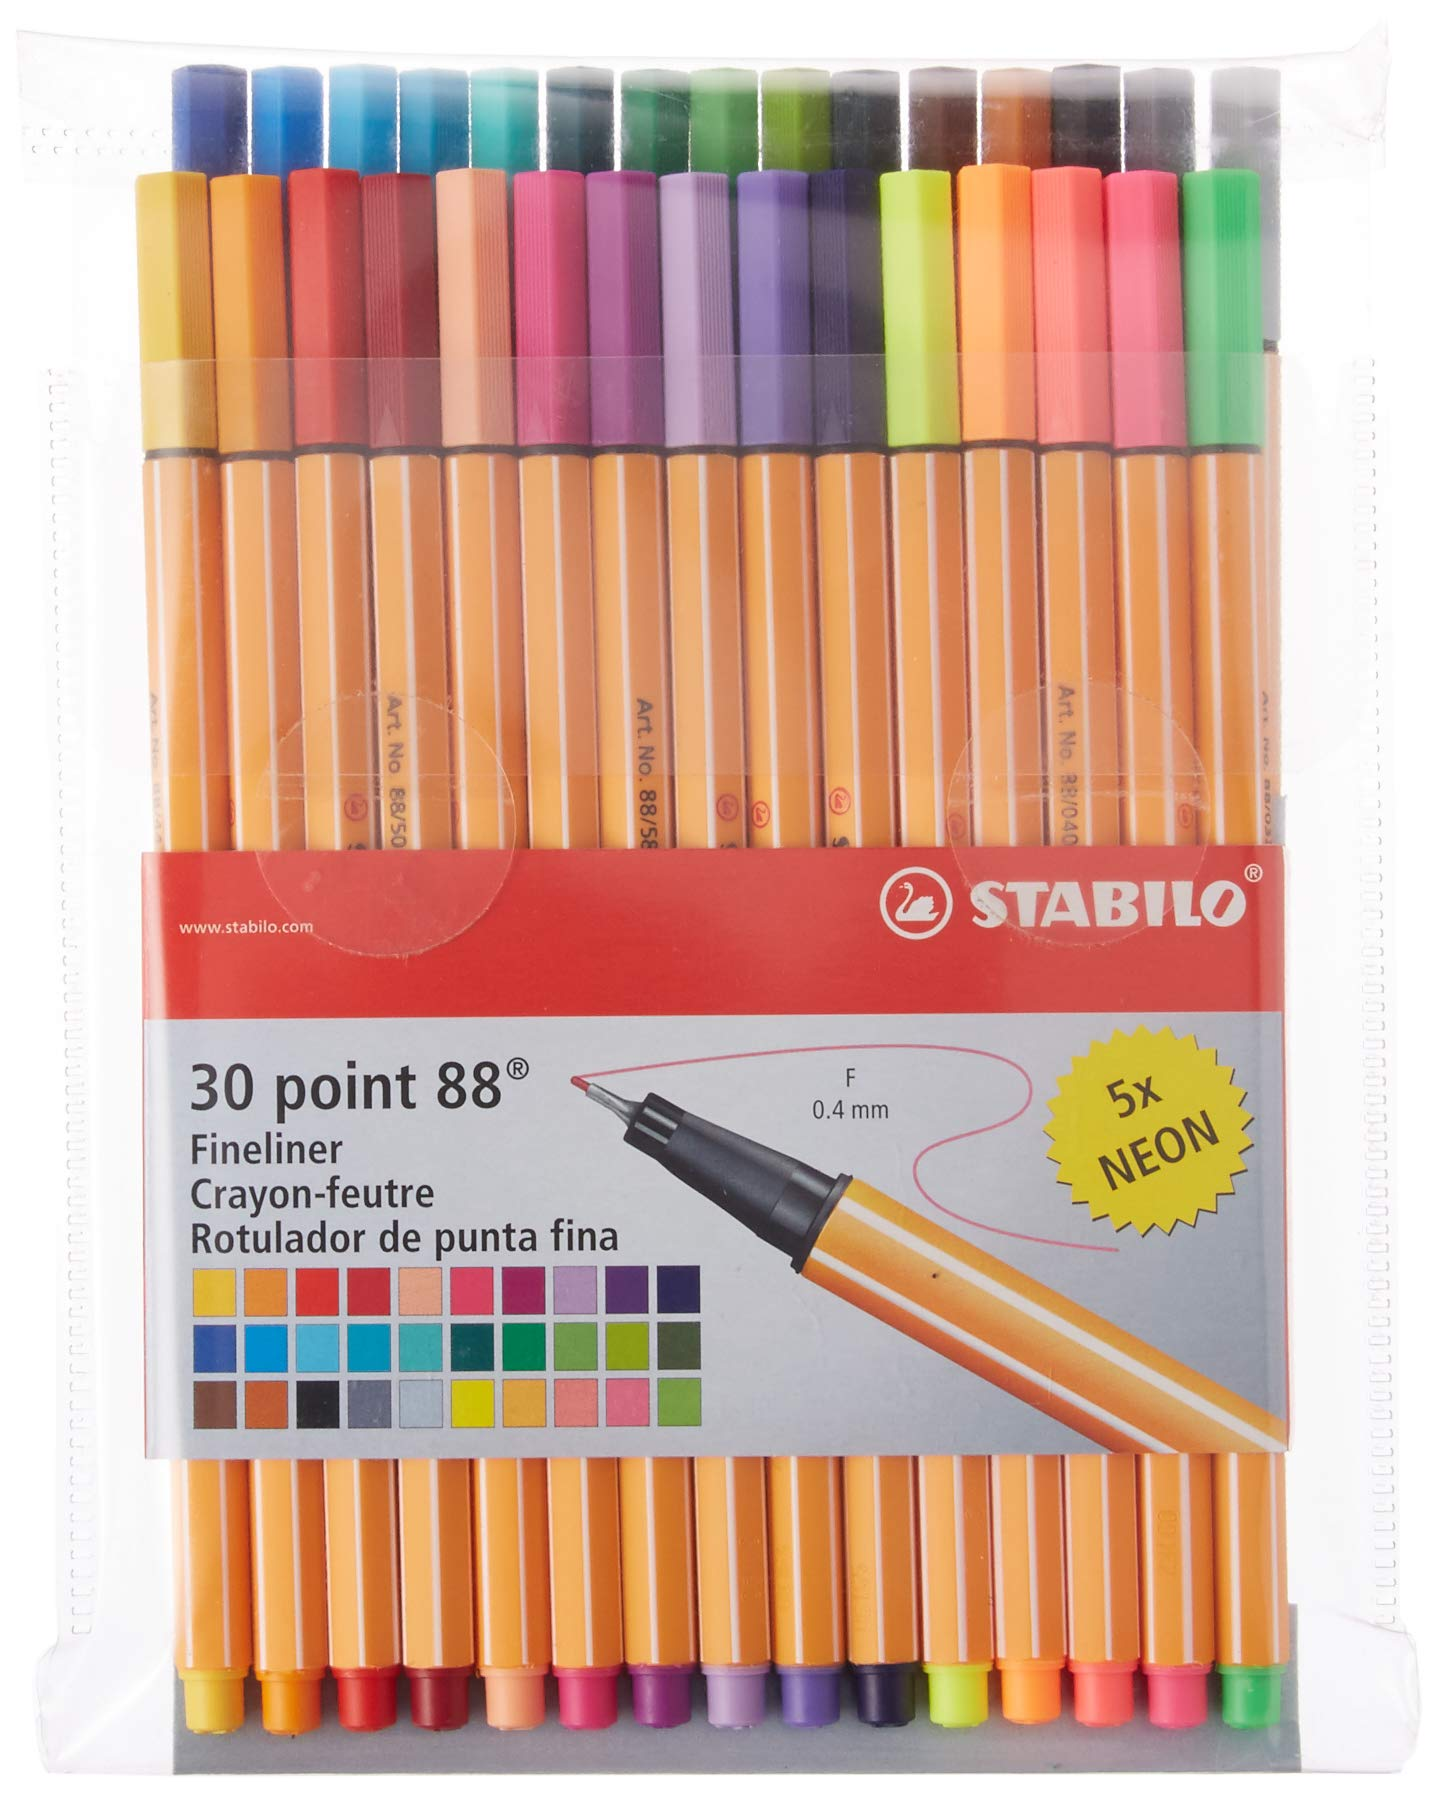 Stabilo Point 88 Fineliner Pens, 0.4 mm - 30-Color Set by STABILO